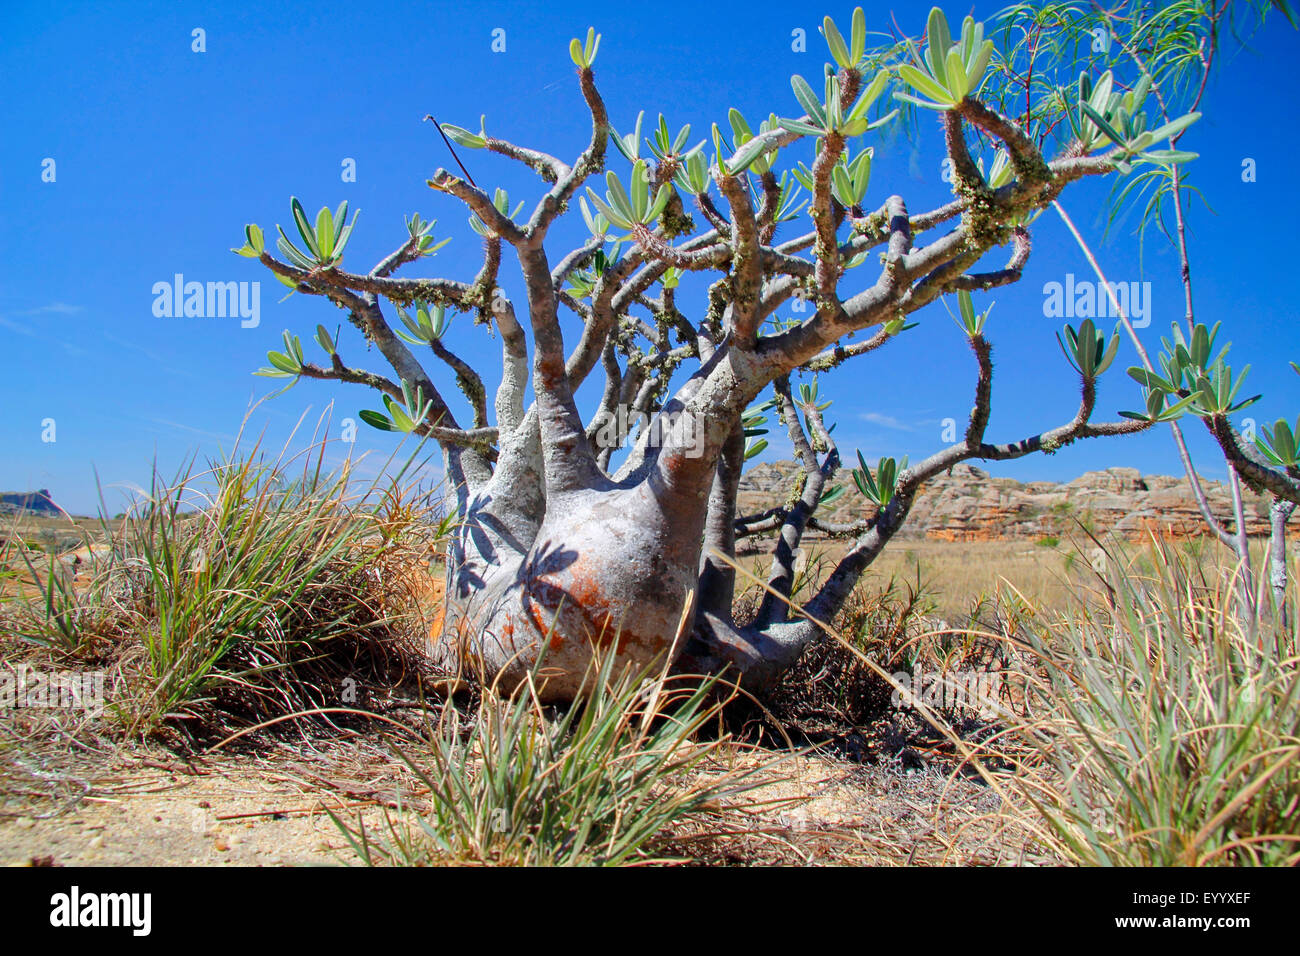 Elephant's Foot Plant  (Pachypodium rosulatum ), single plant in front of the the mountains, Madagascar, Isalo - Stock Image